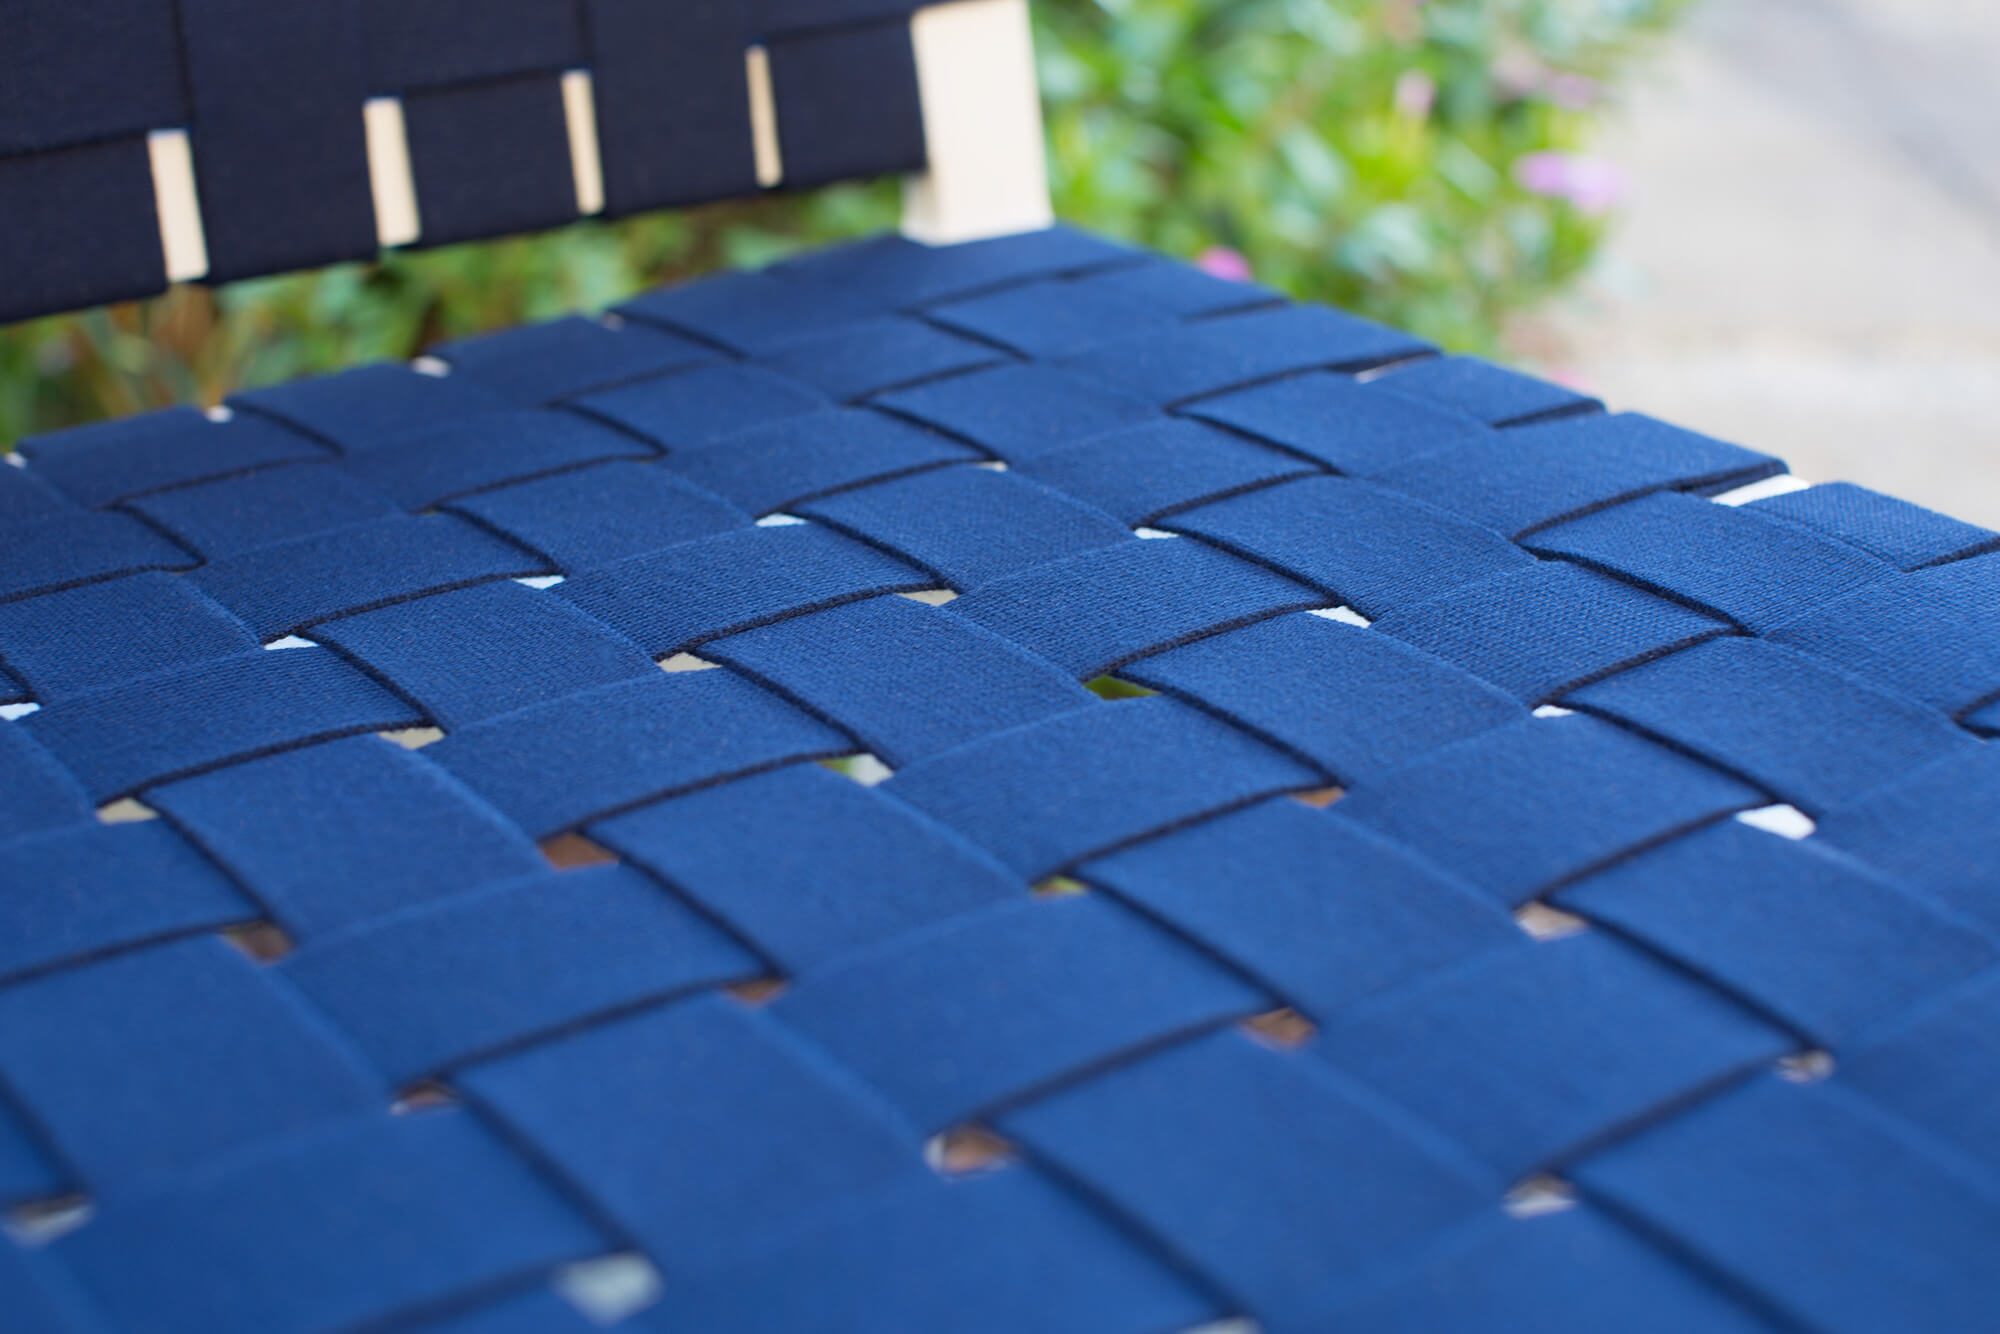 Close up detail of a navy blue Sunbrella Strap seat